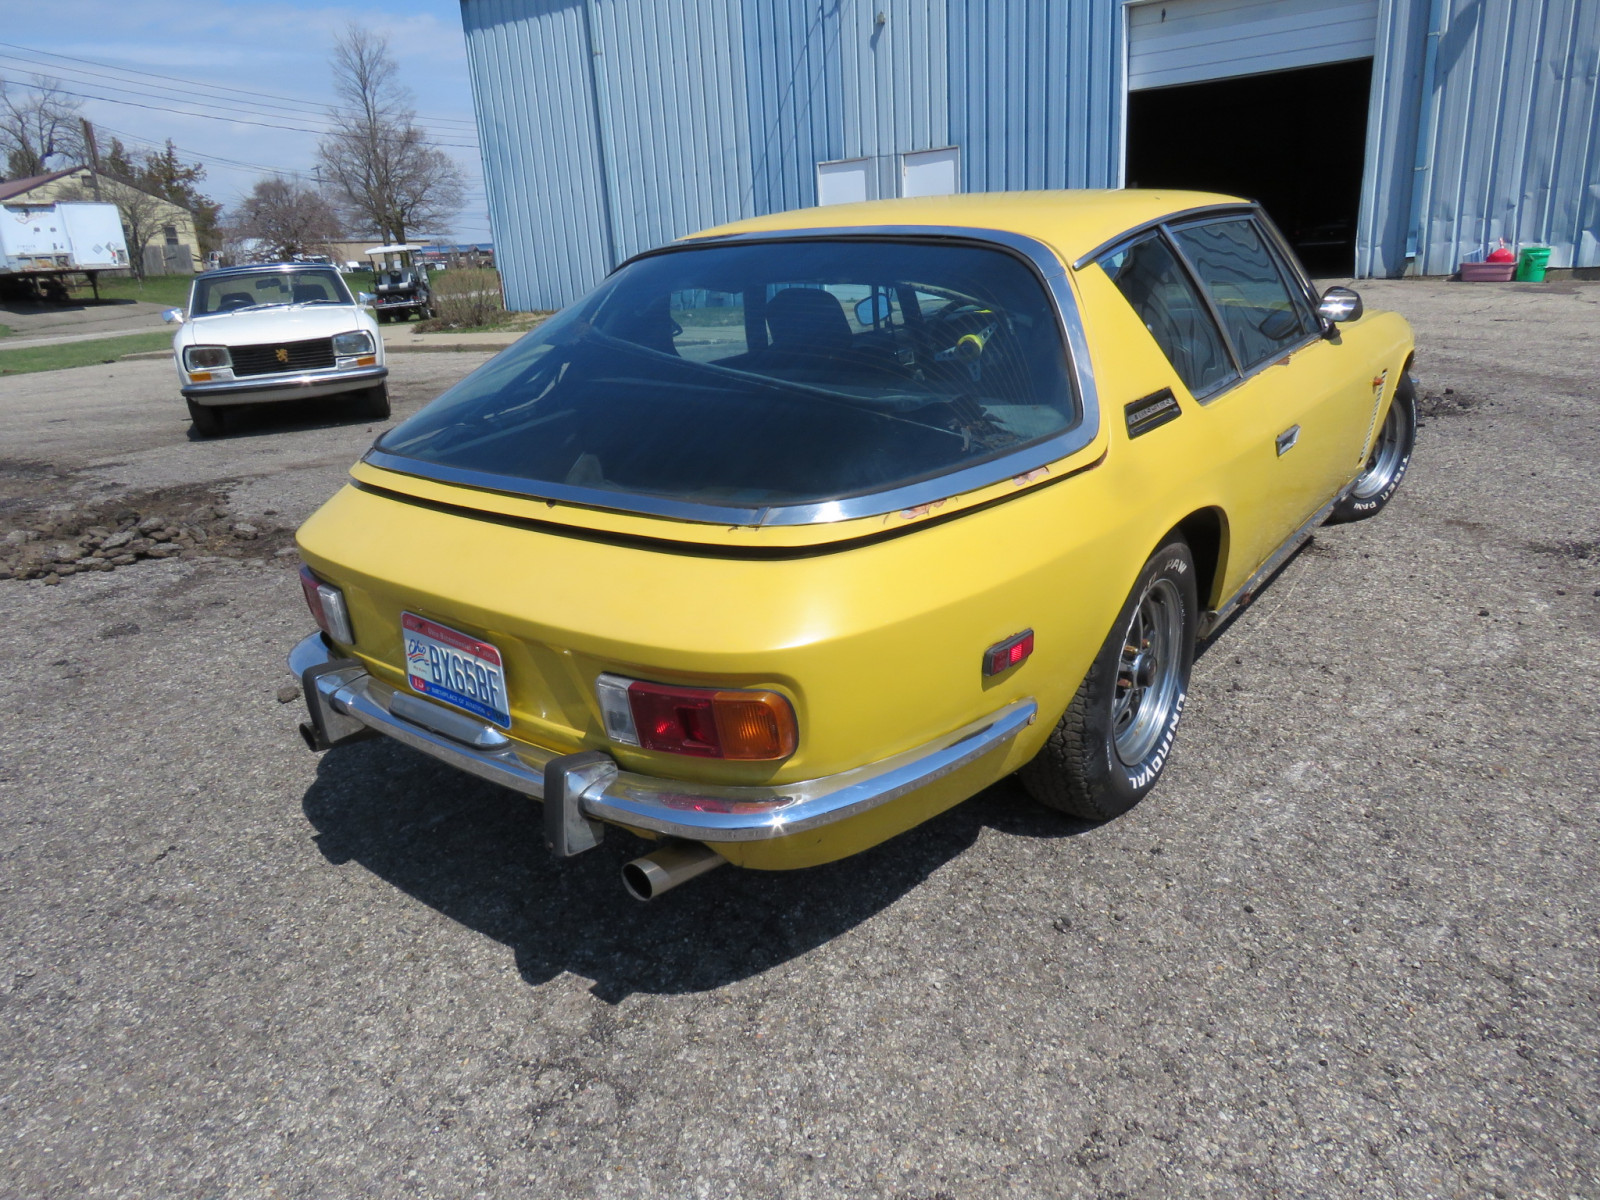 1971 Jensen Interceptor - Image 6